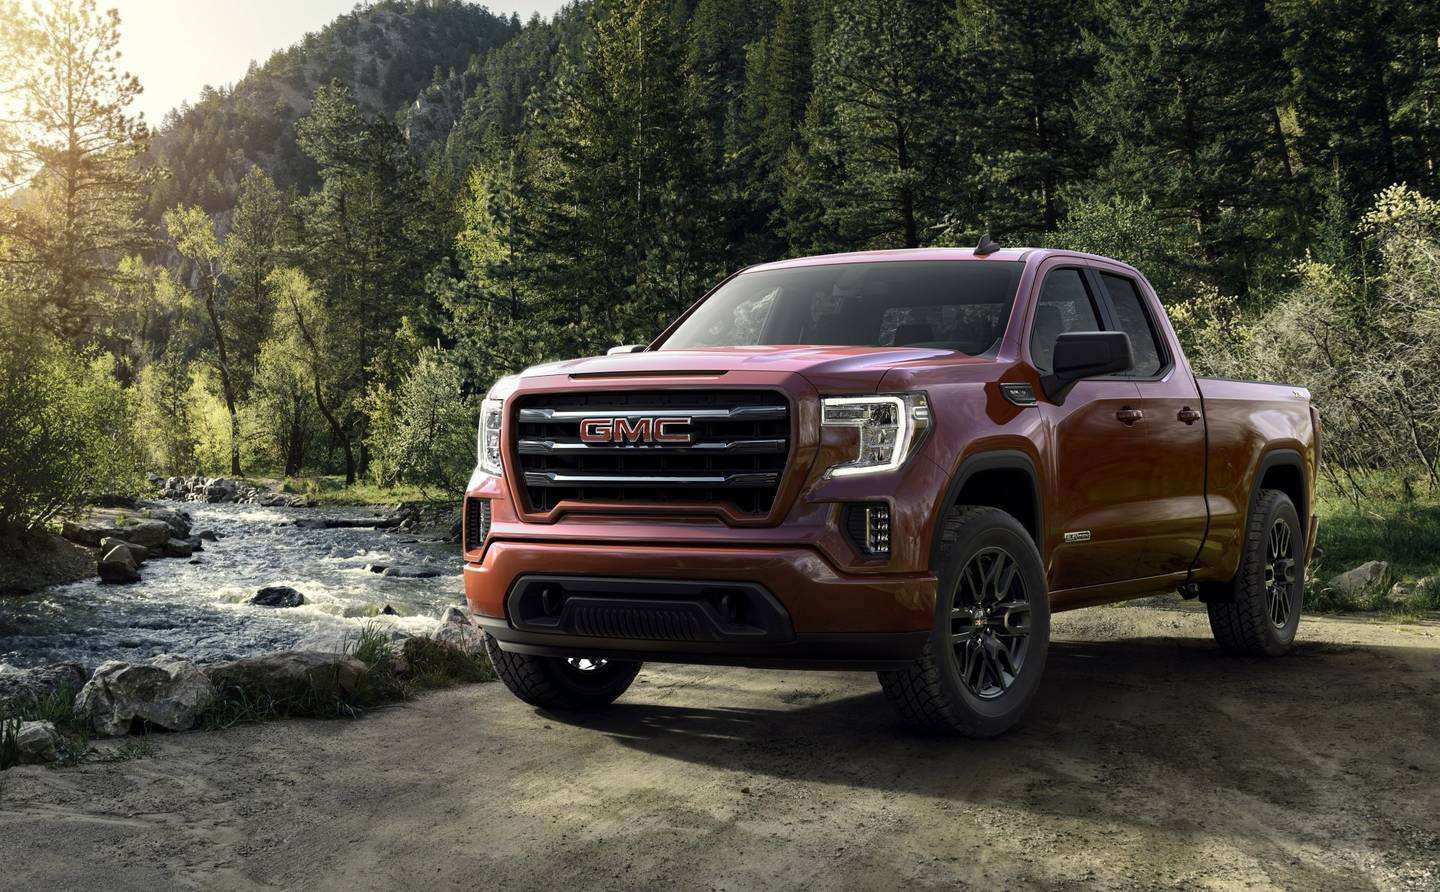 84 Concept of 2019 Gmc 1500 Release Date Picture with 2019 Gmc 1500 Release Date